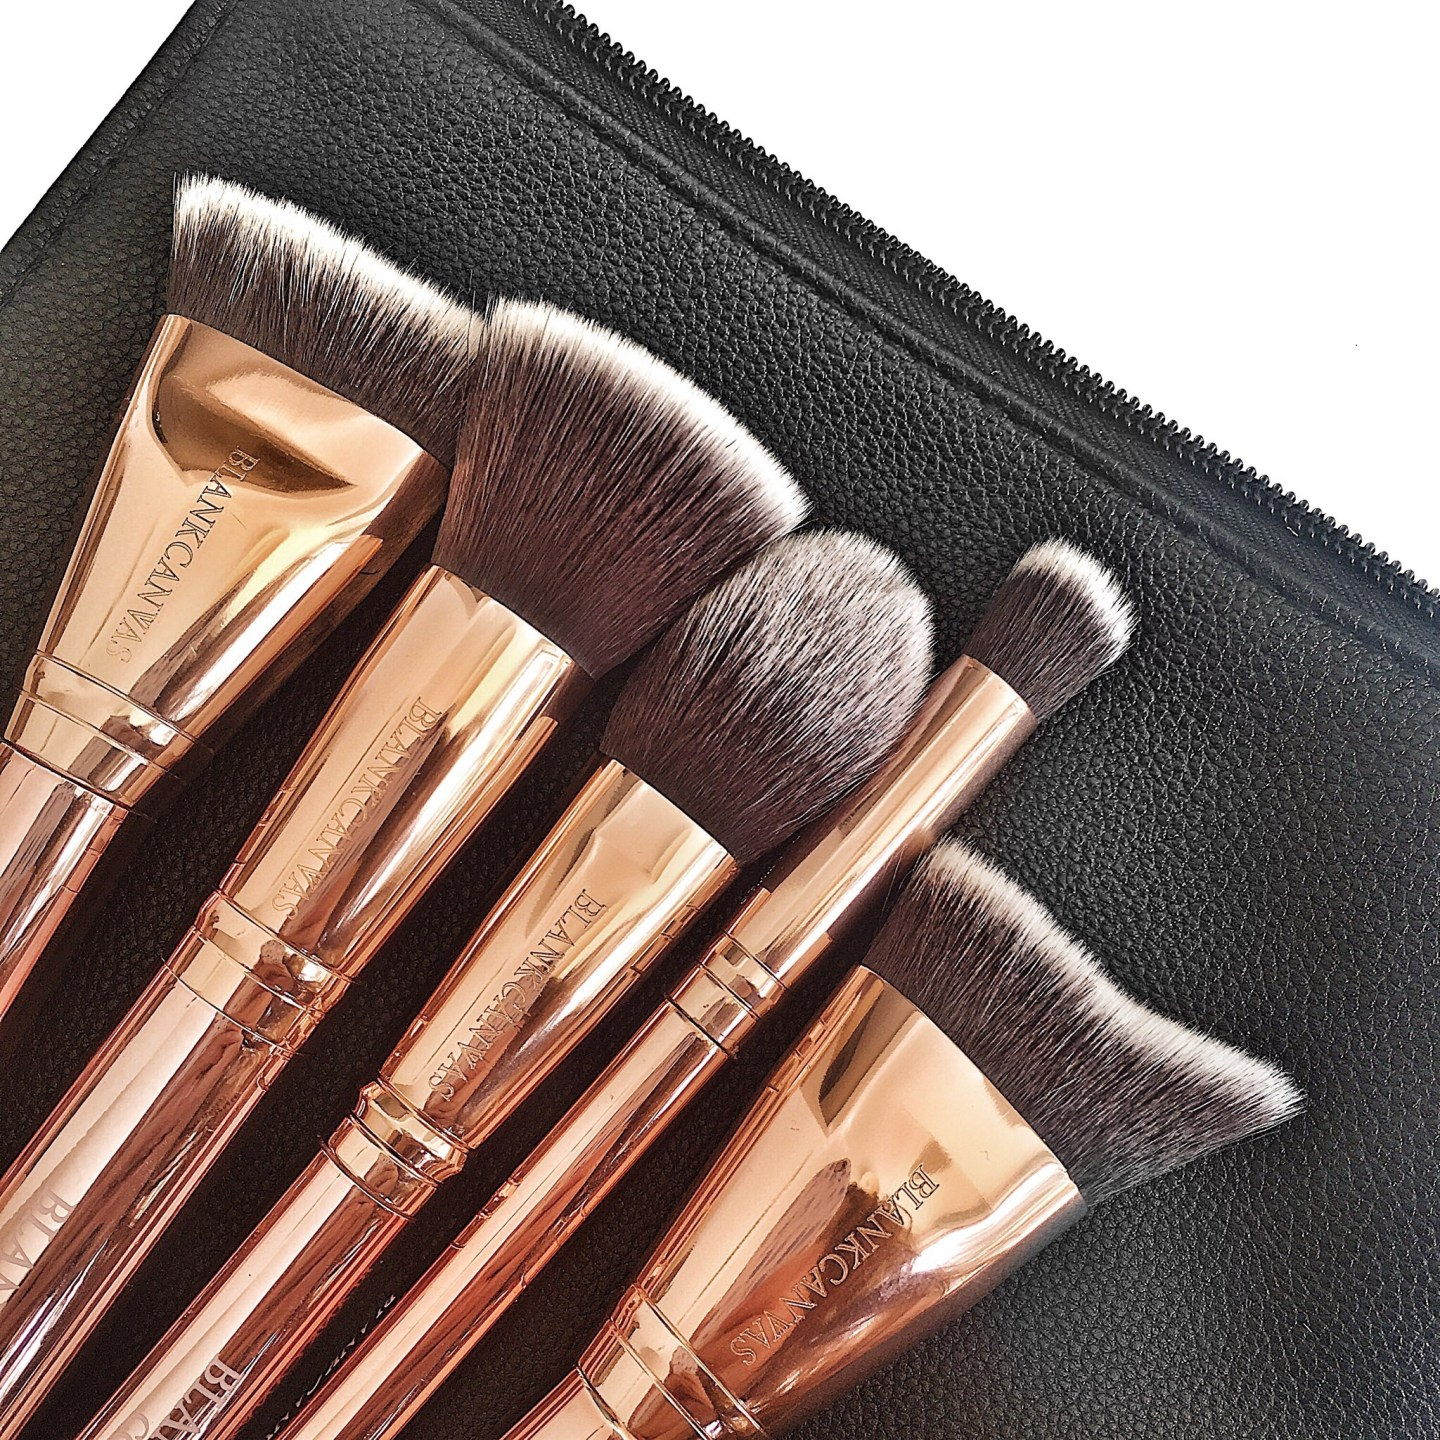 royal Meghan markle blank canvas cosmetics makeup brushes review